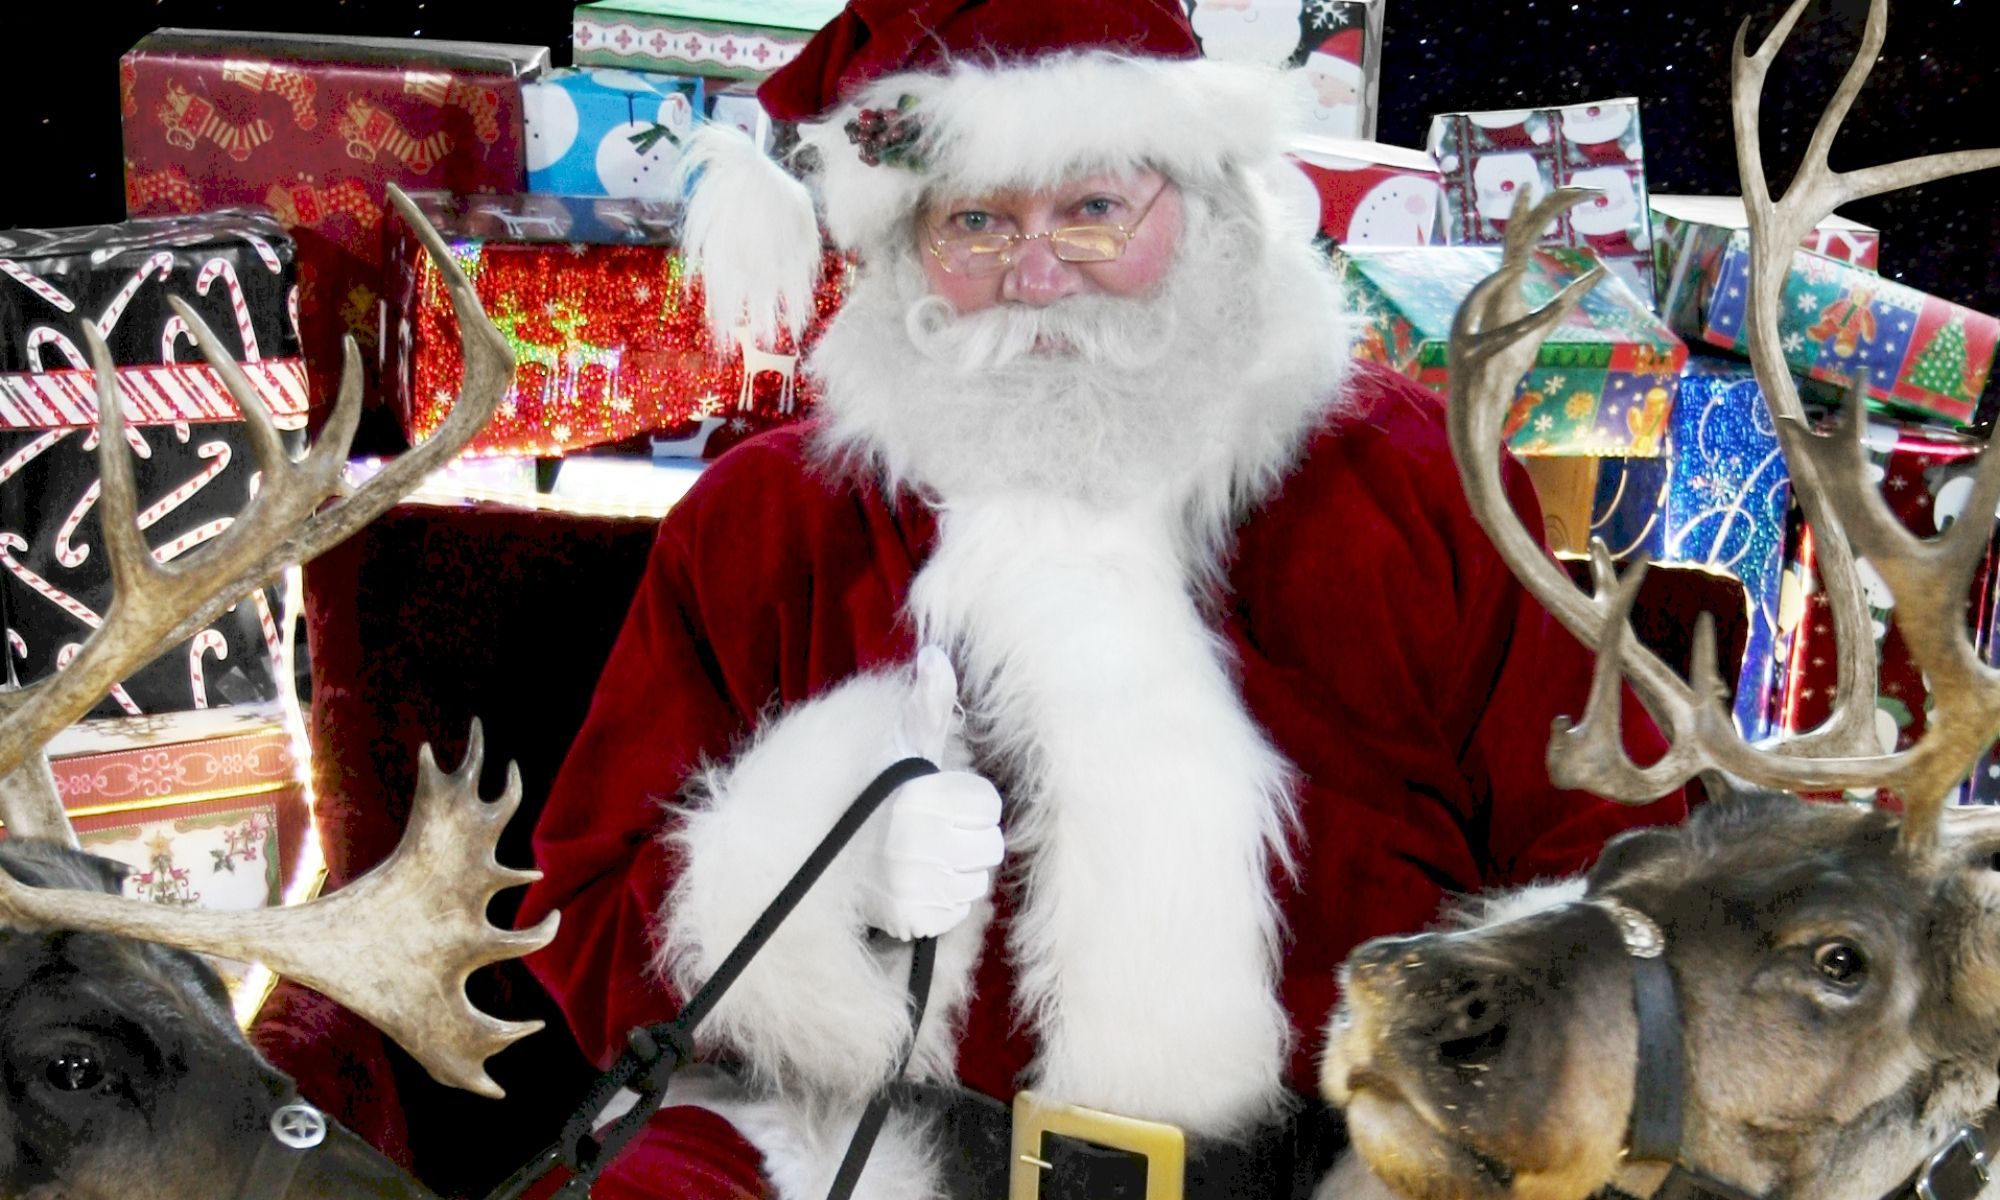 Santa and reindeer header graphic